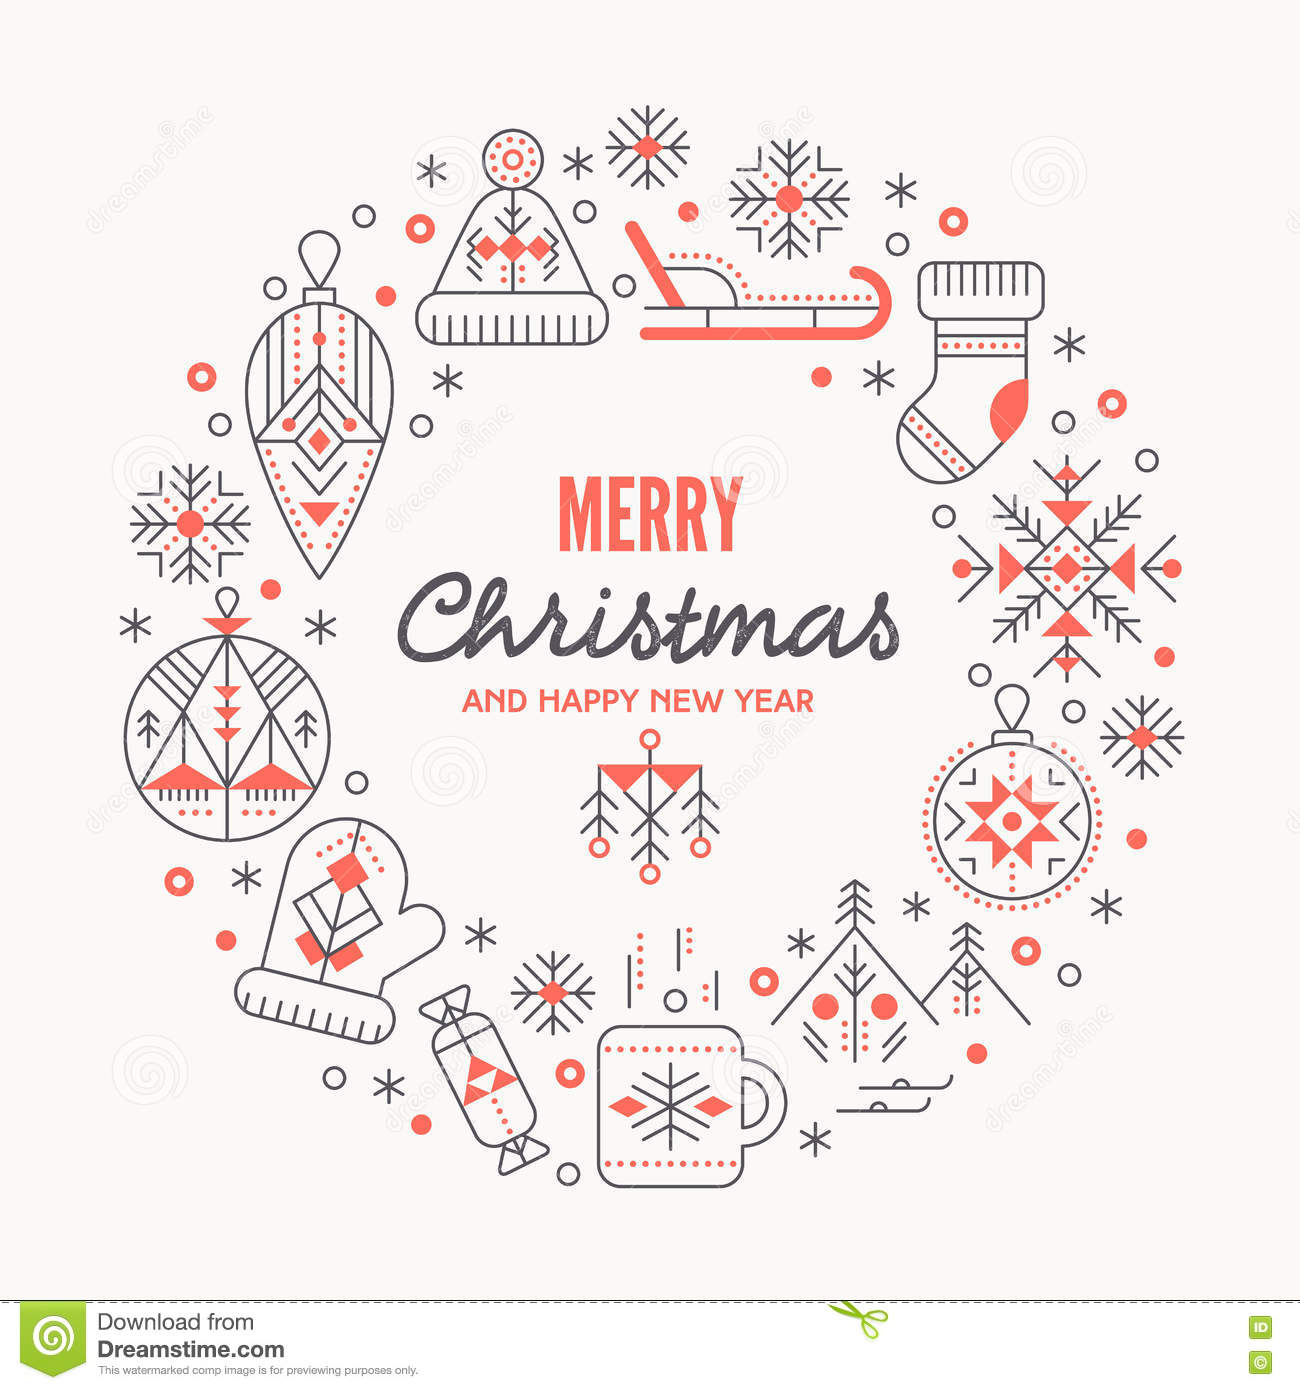 Christmas Greeting Card Template With Outlined Signs Forming A Ring